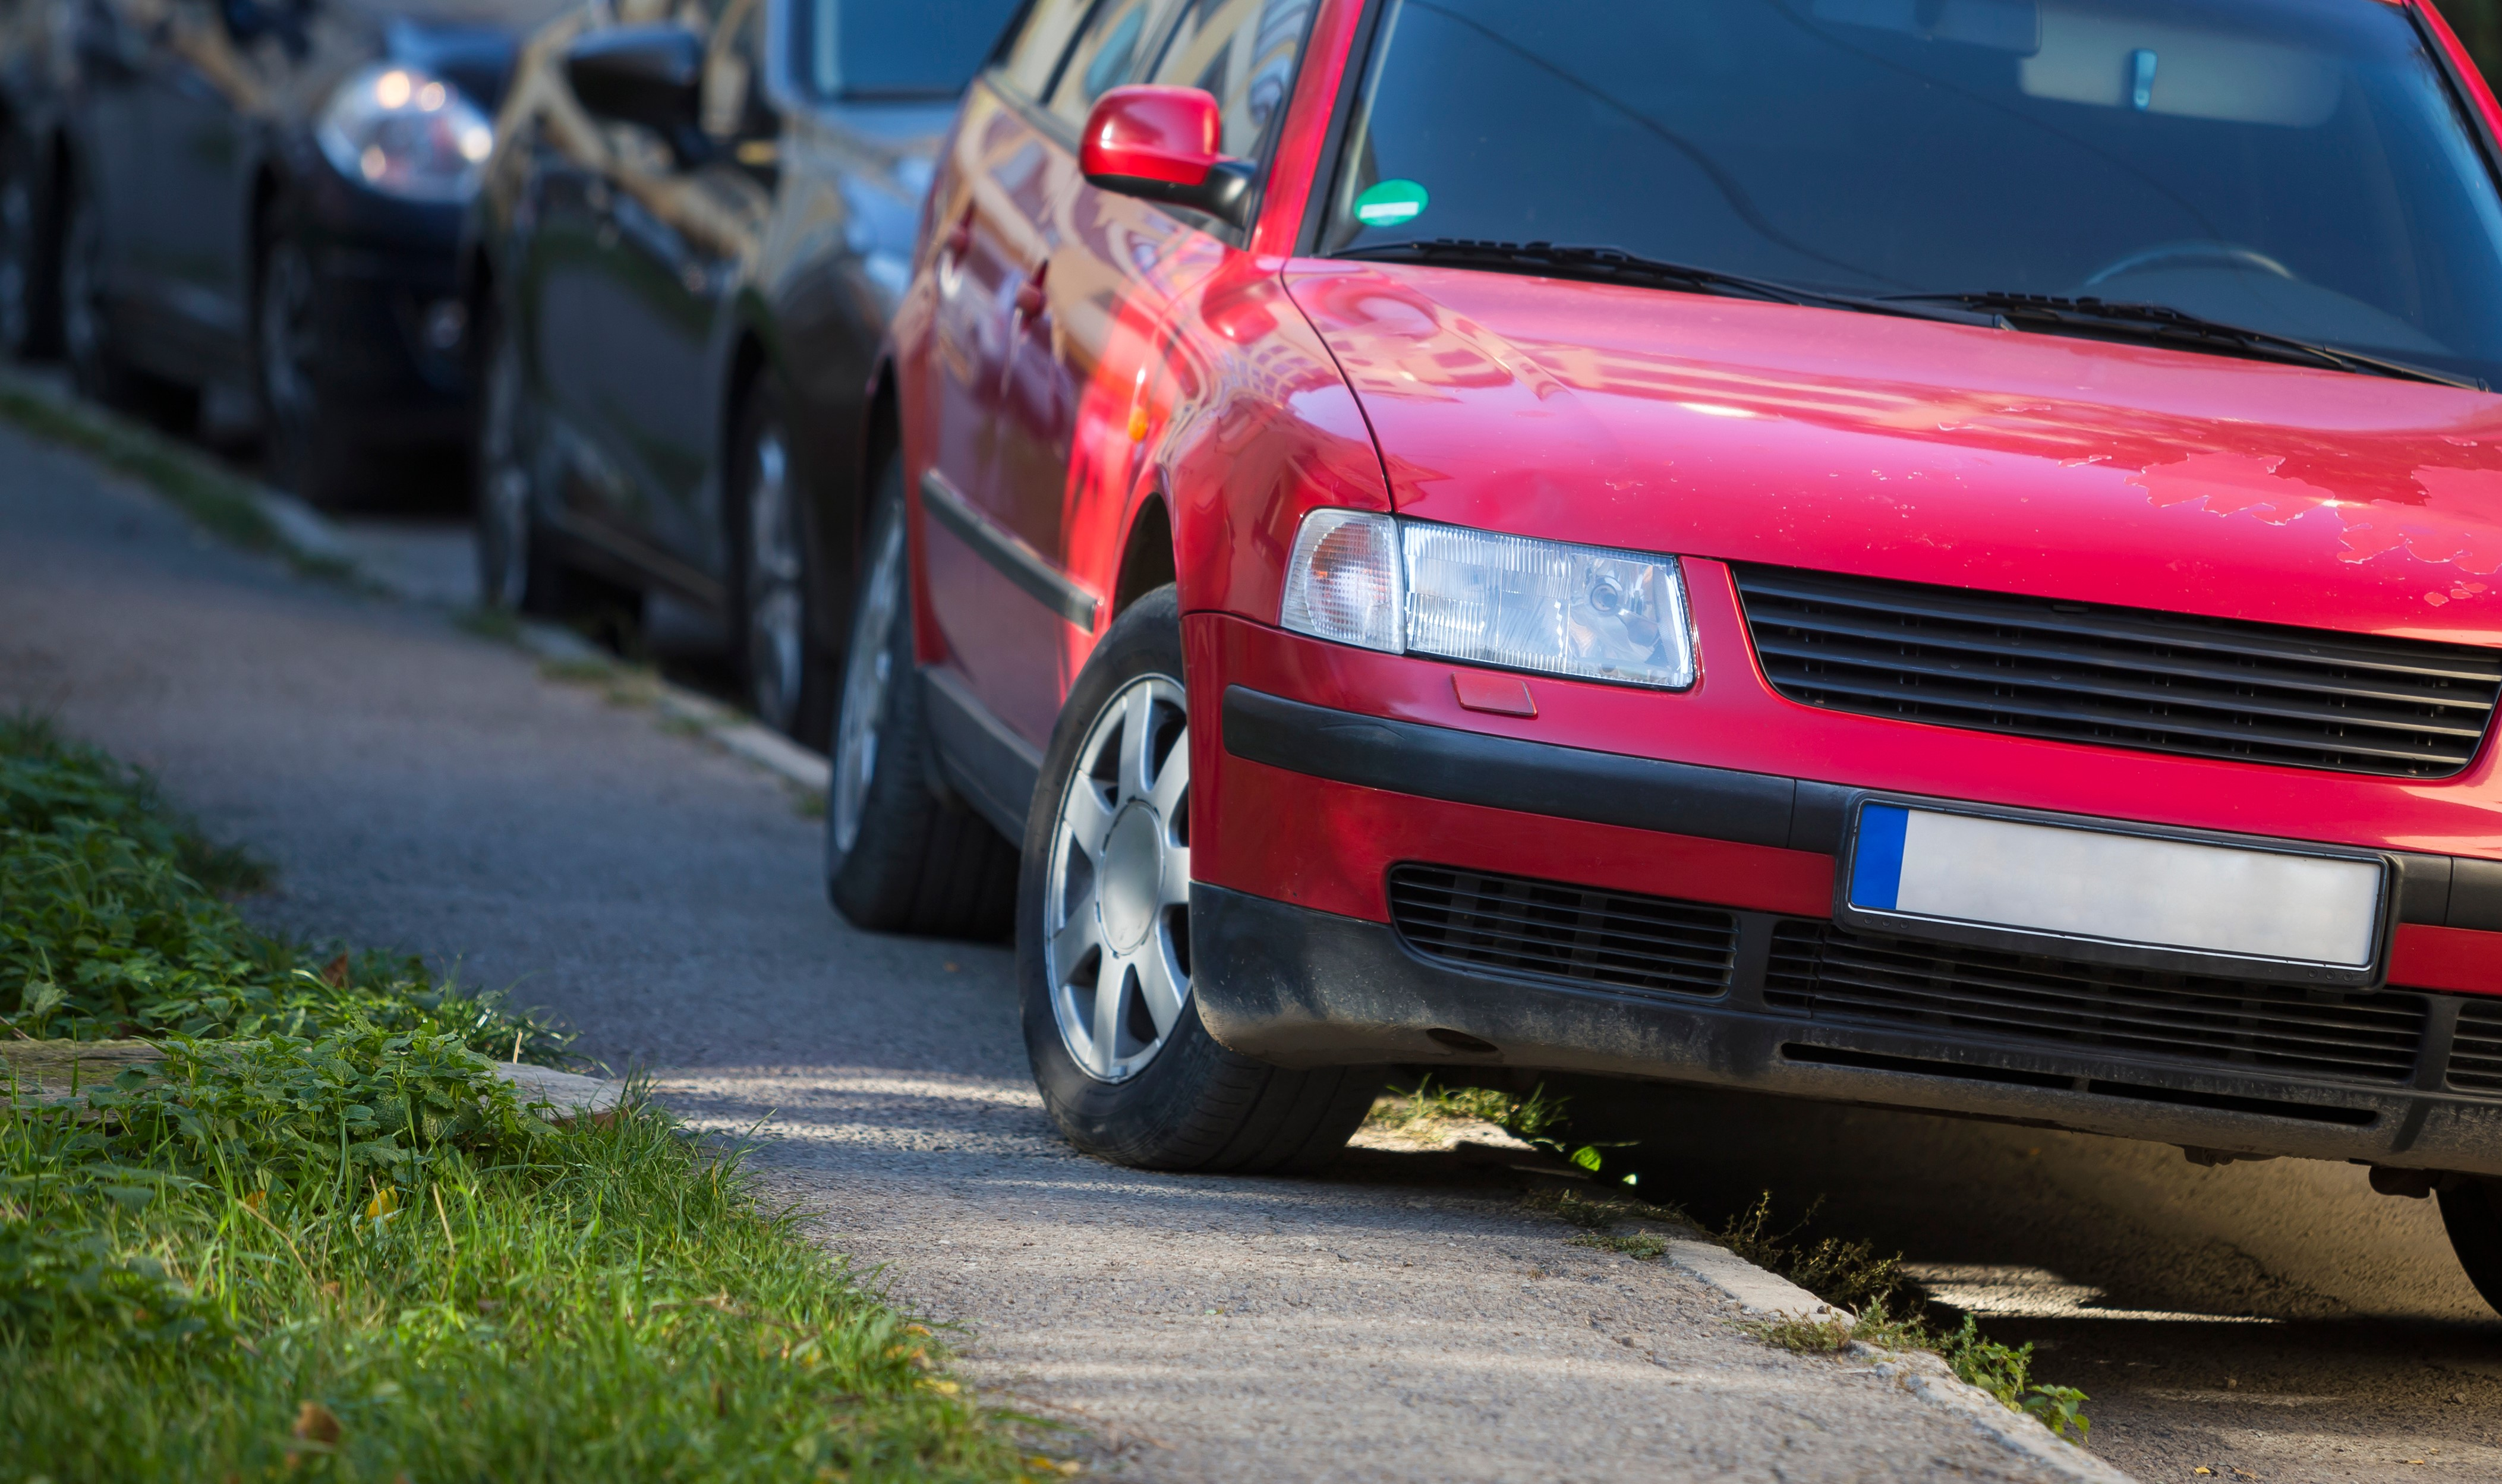 Photo of a car red car parked on the pavement